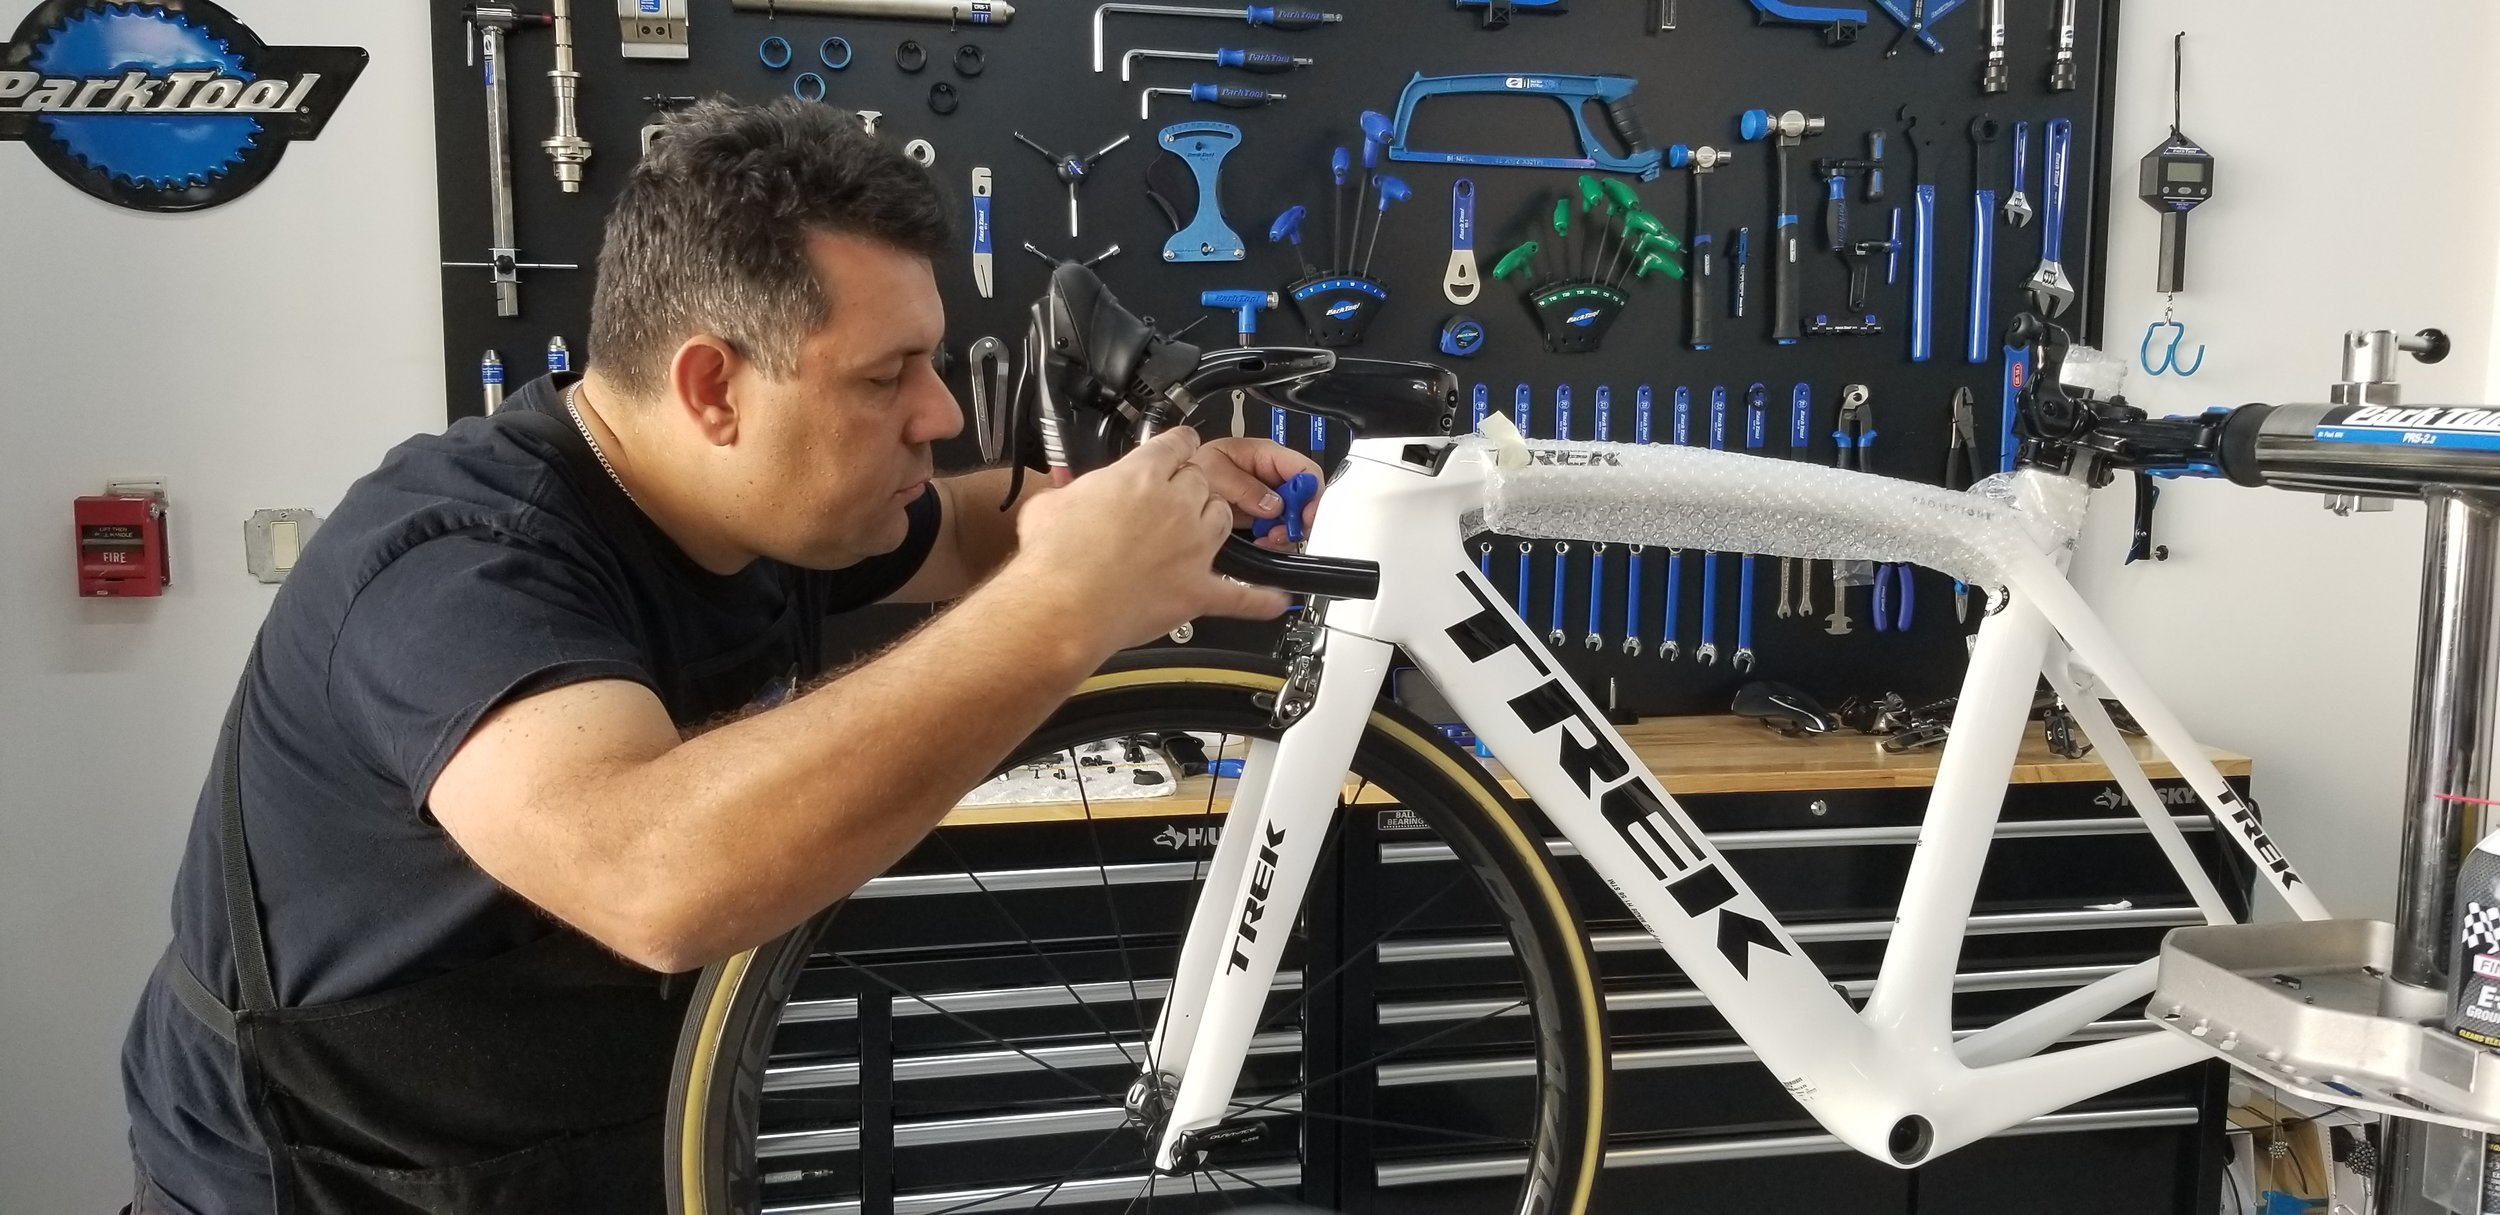 @viticoquality will leave your bike like new